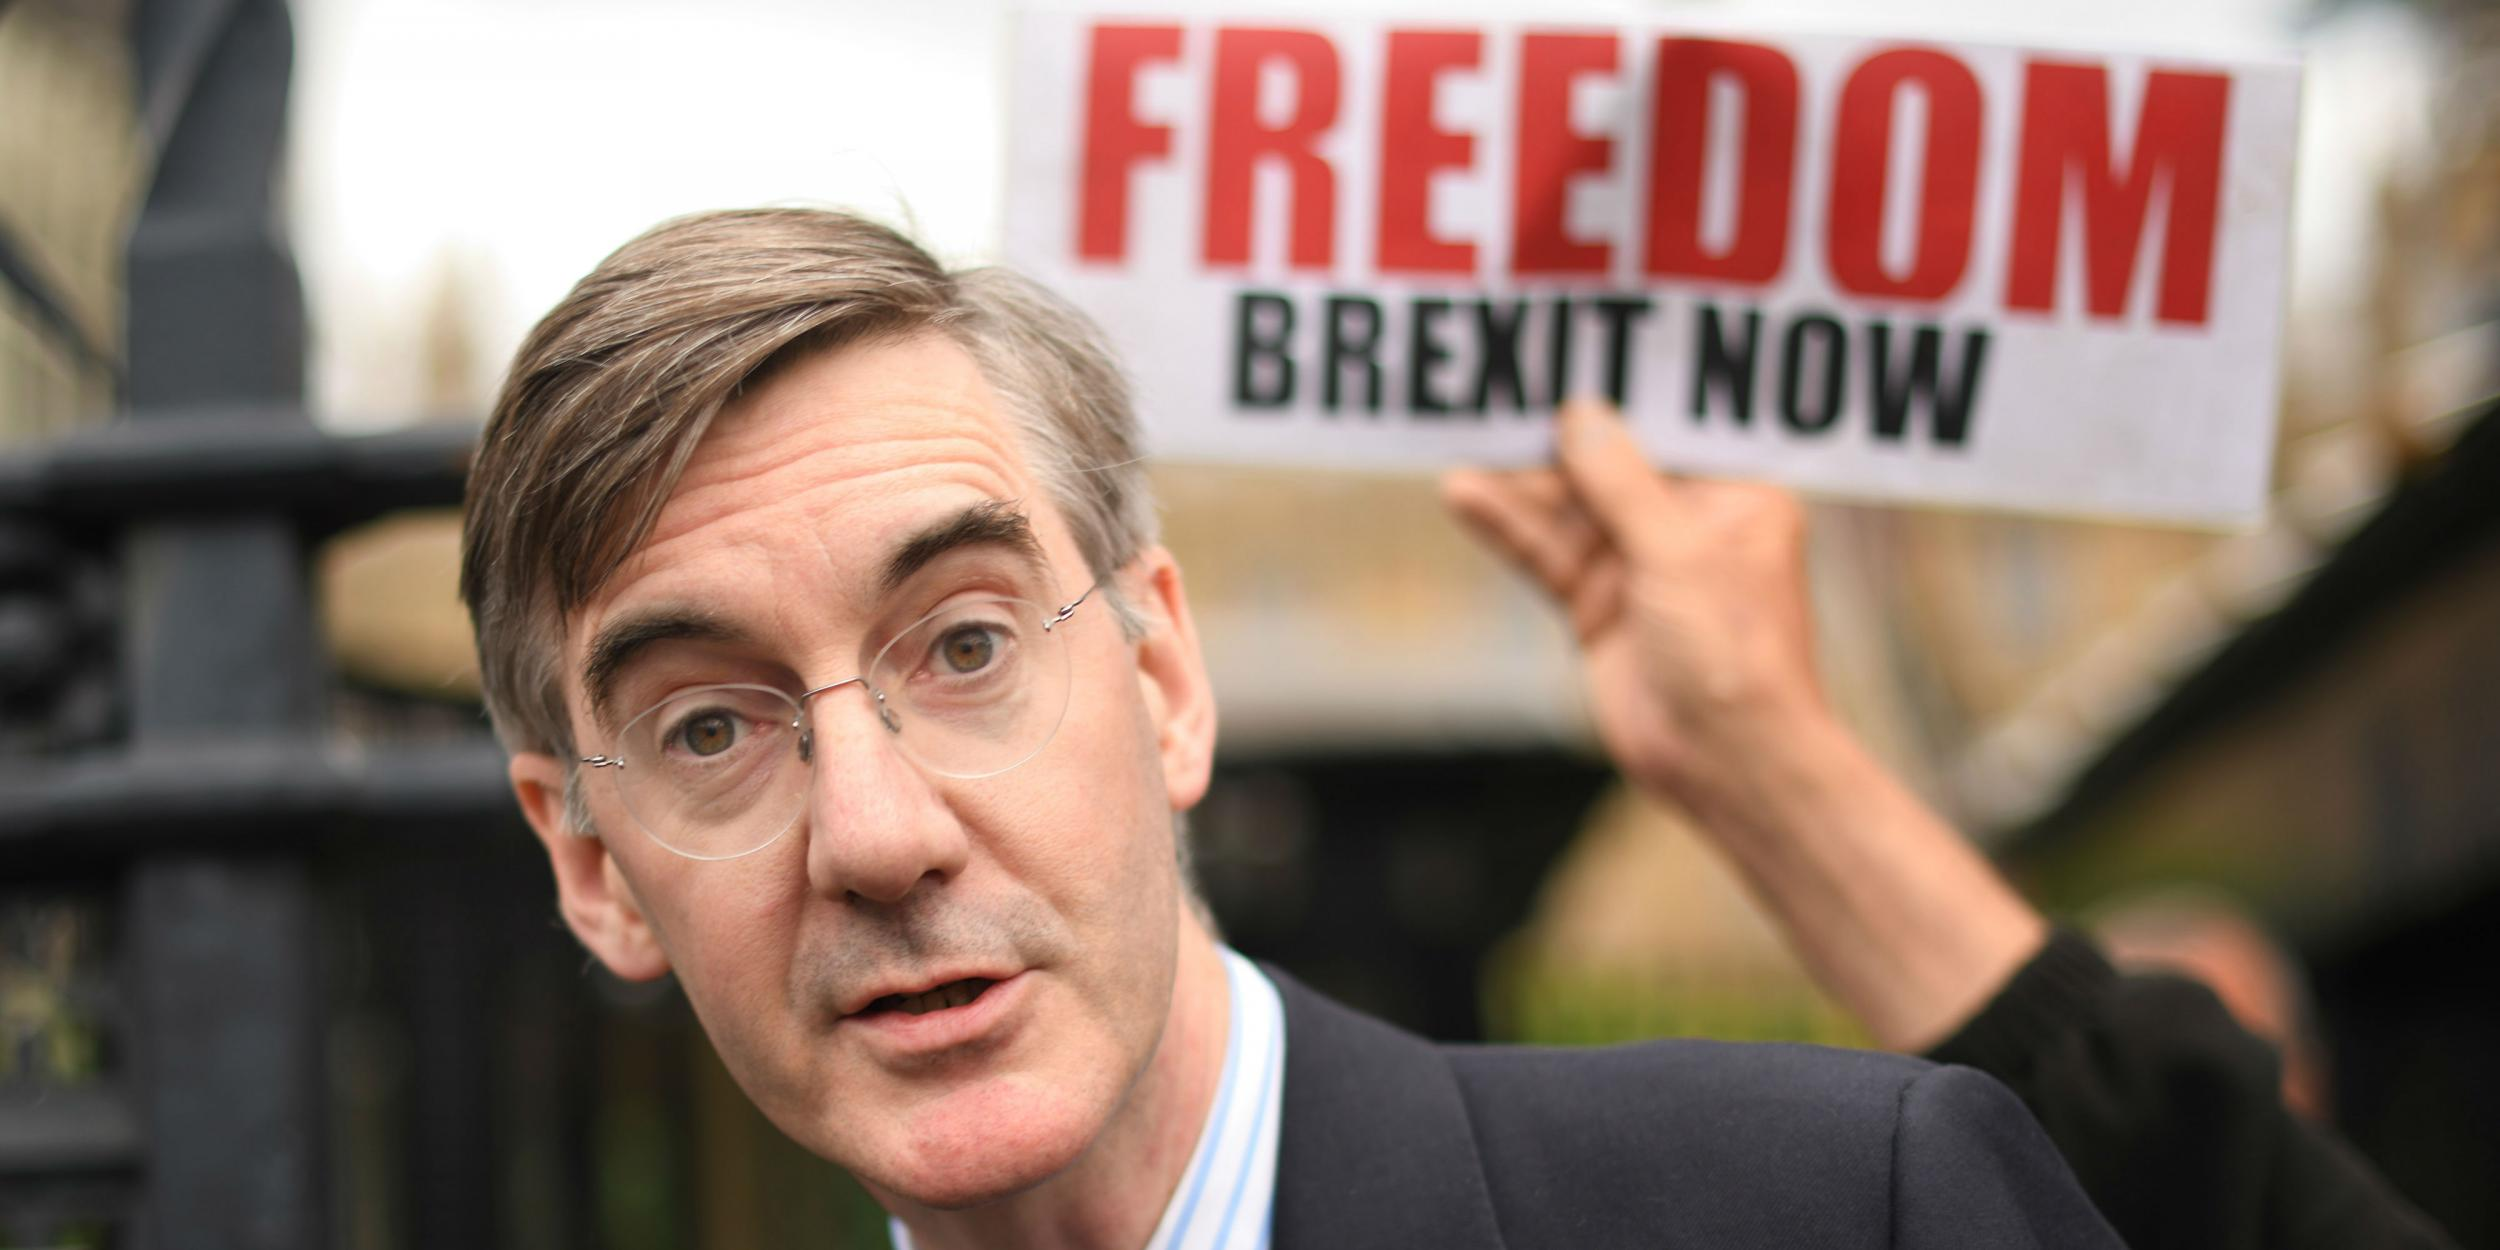 Jacob Rees-Mogg mocked after trying to link England's Cricket World Cup win to Brexit